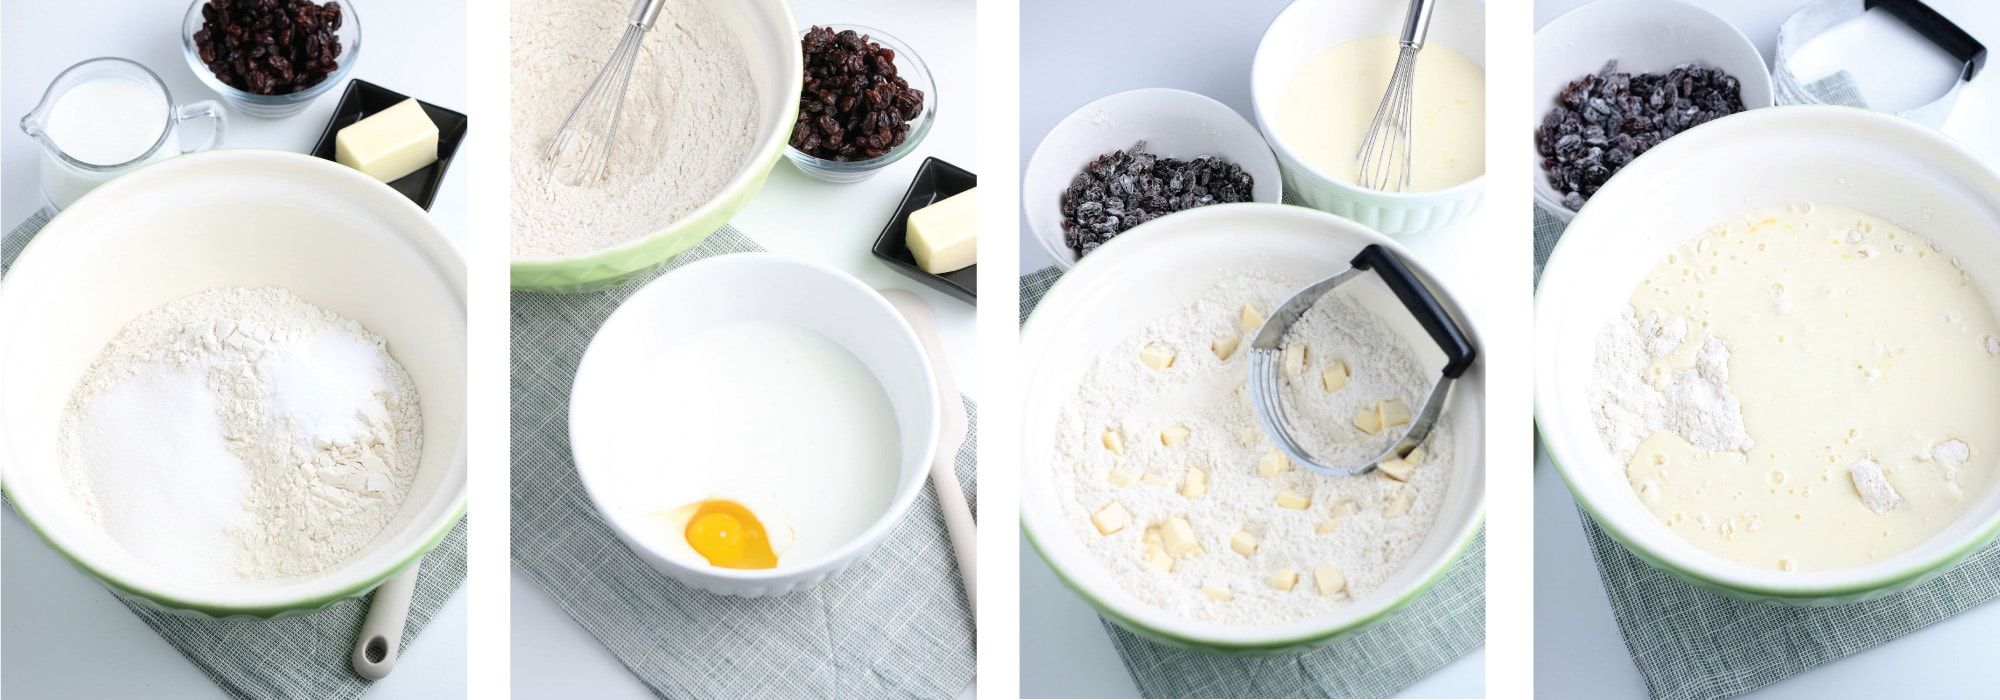 Bowl with Ingredients in steps